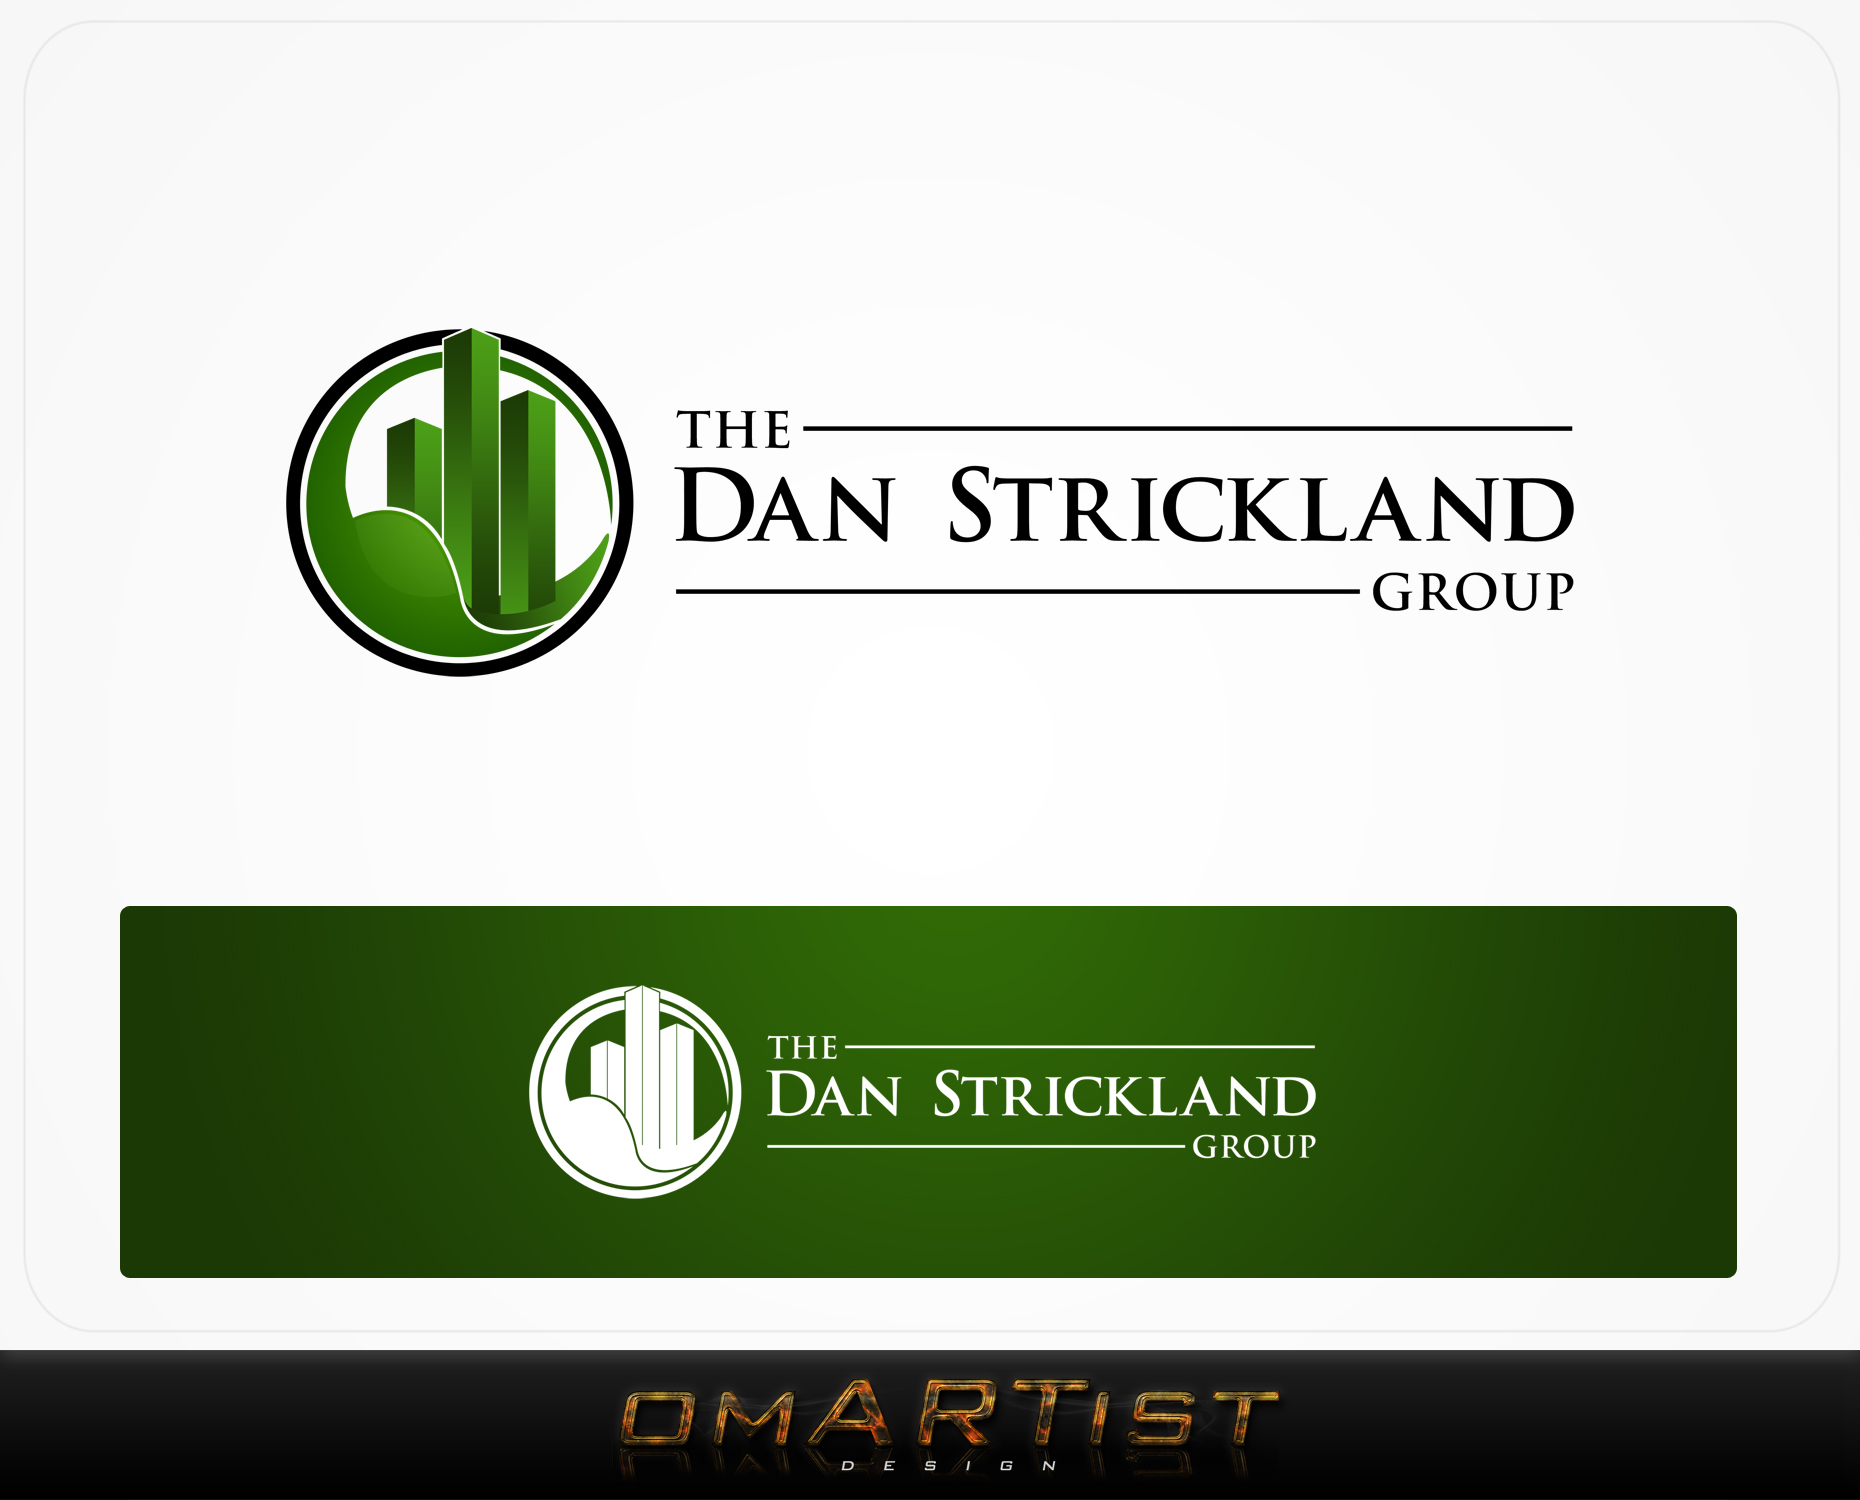 Logo Design by omARTist - Entry No. 175 in the Logo Design Contest Creative Logo Design for The Dan Strickland Group.